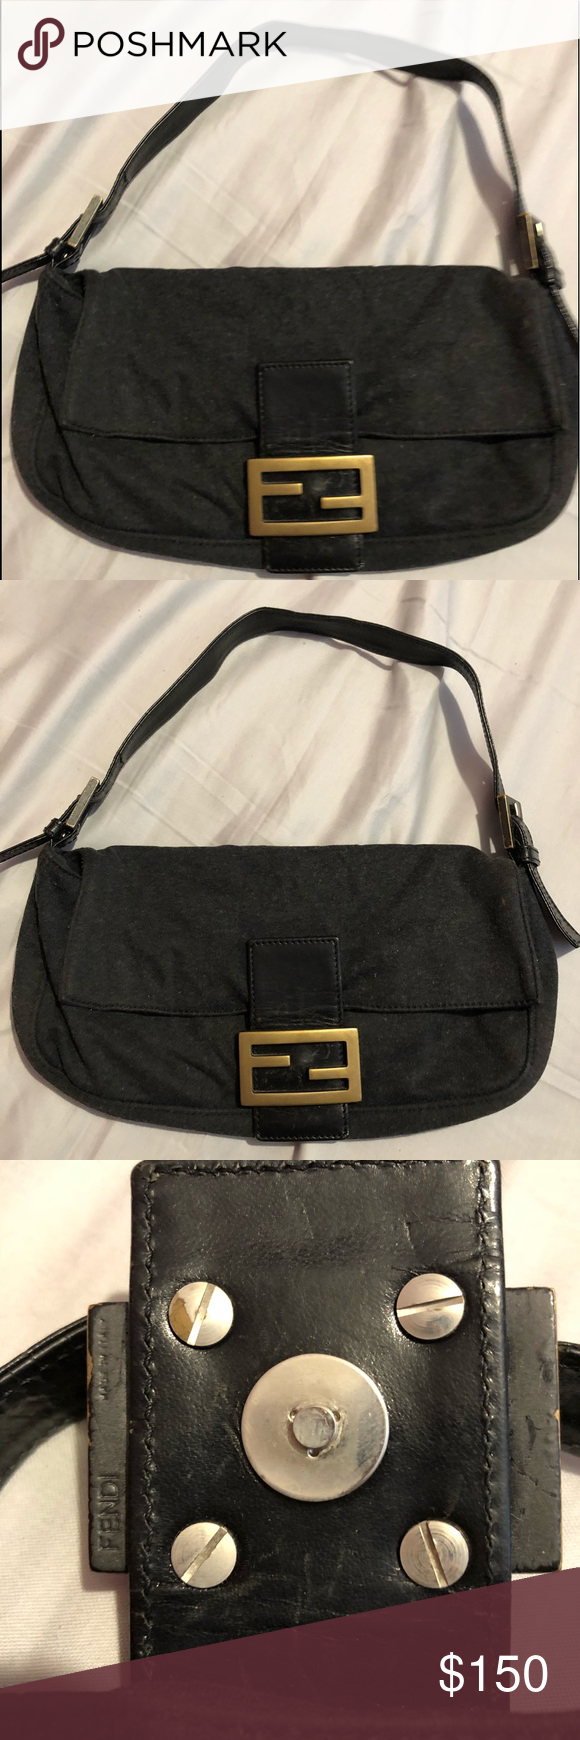 c5bde179bd FENDI shoulder bag FENDI fabric shoulder bag USED - slightly worn Fendi Bags  Shoulder Bags